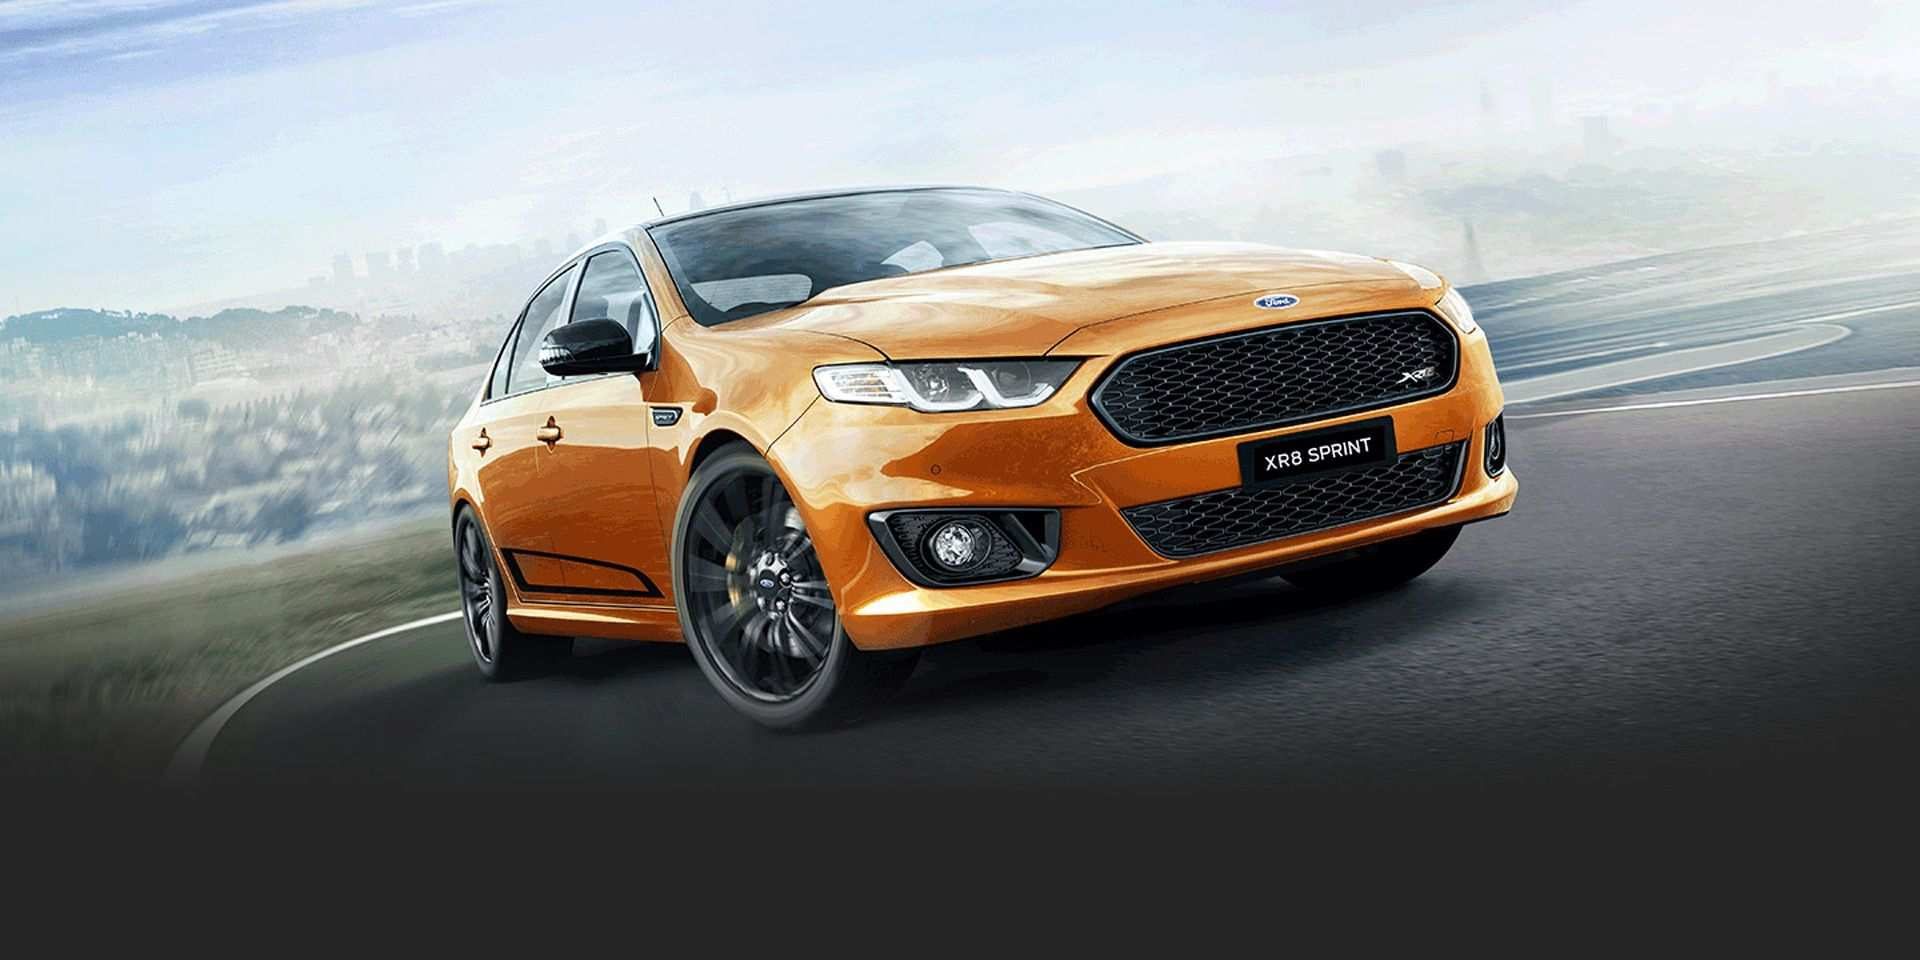 67 Great 2020 Ford Falcon Xr8 Gt Reviews with 2020 Ford Falcon Xr8 Gt